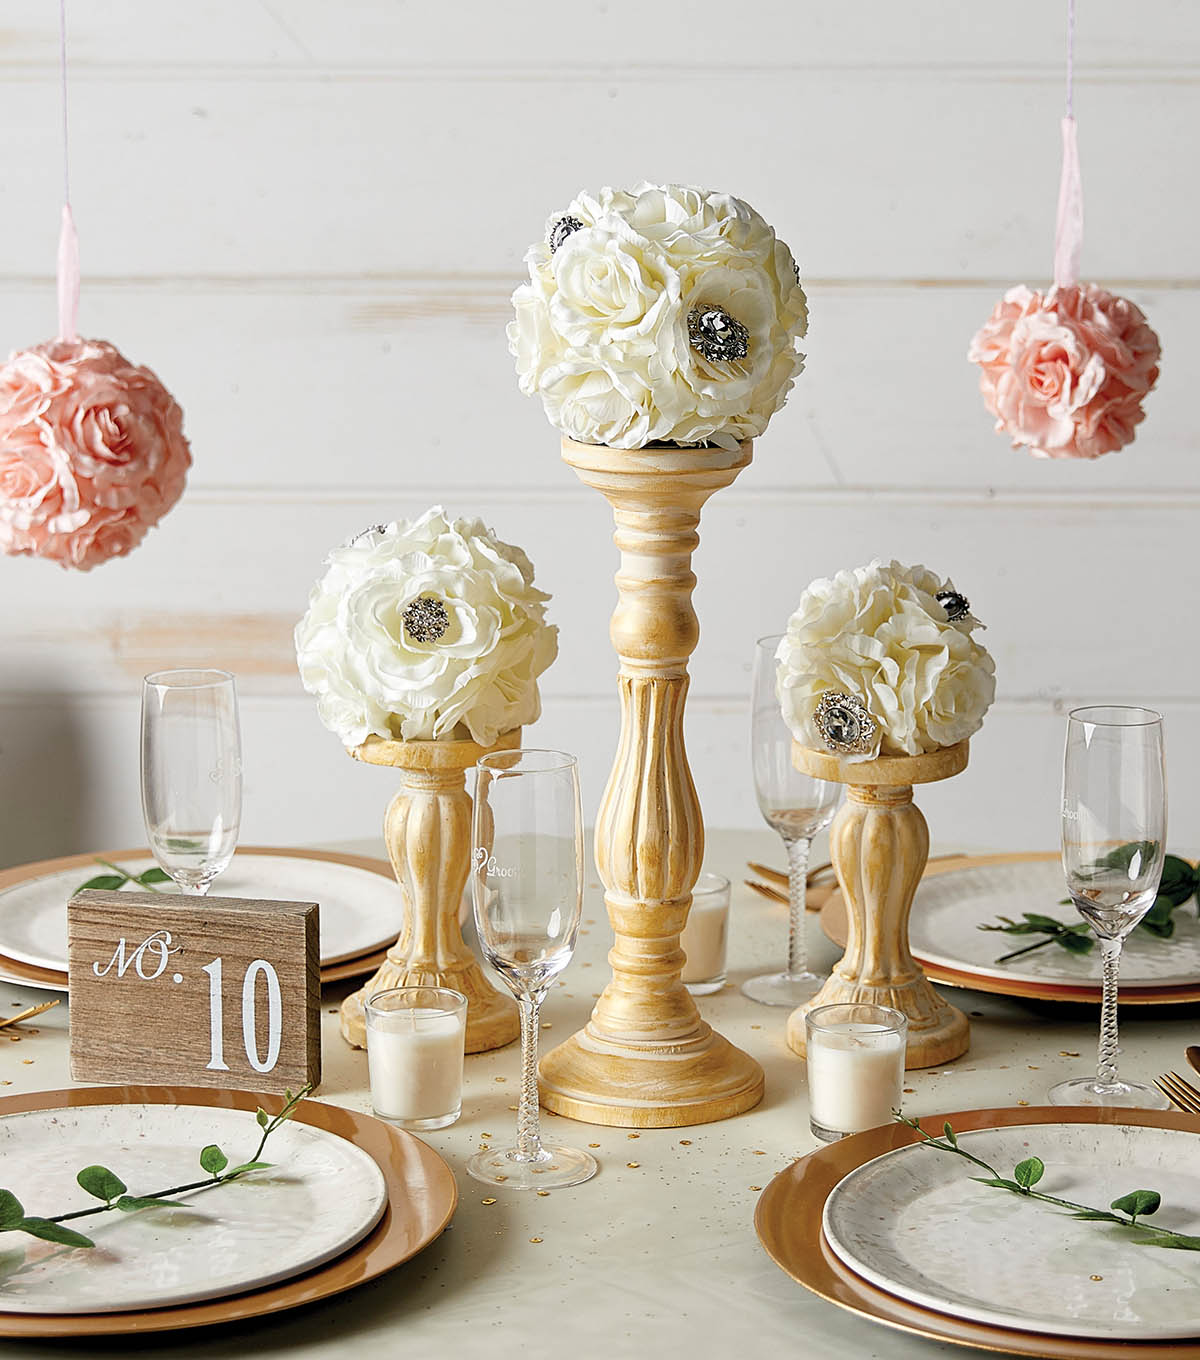 How To Make A Kissing Ball Wedding Centerpiece | JOANN